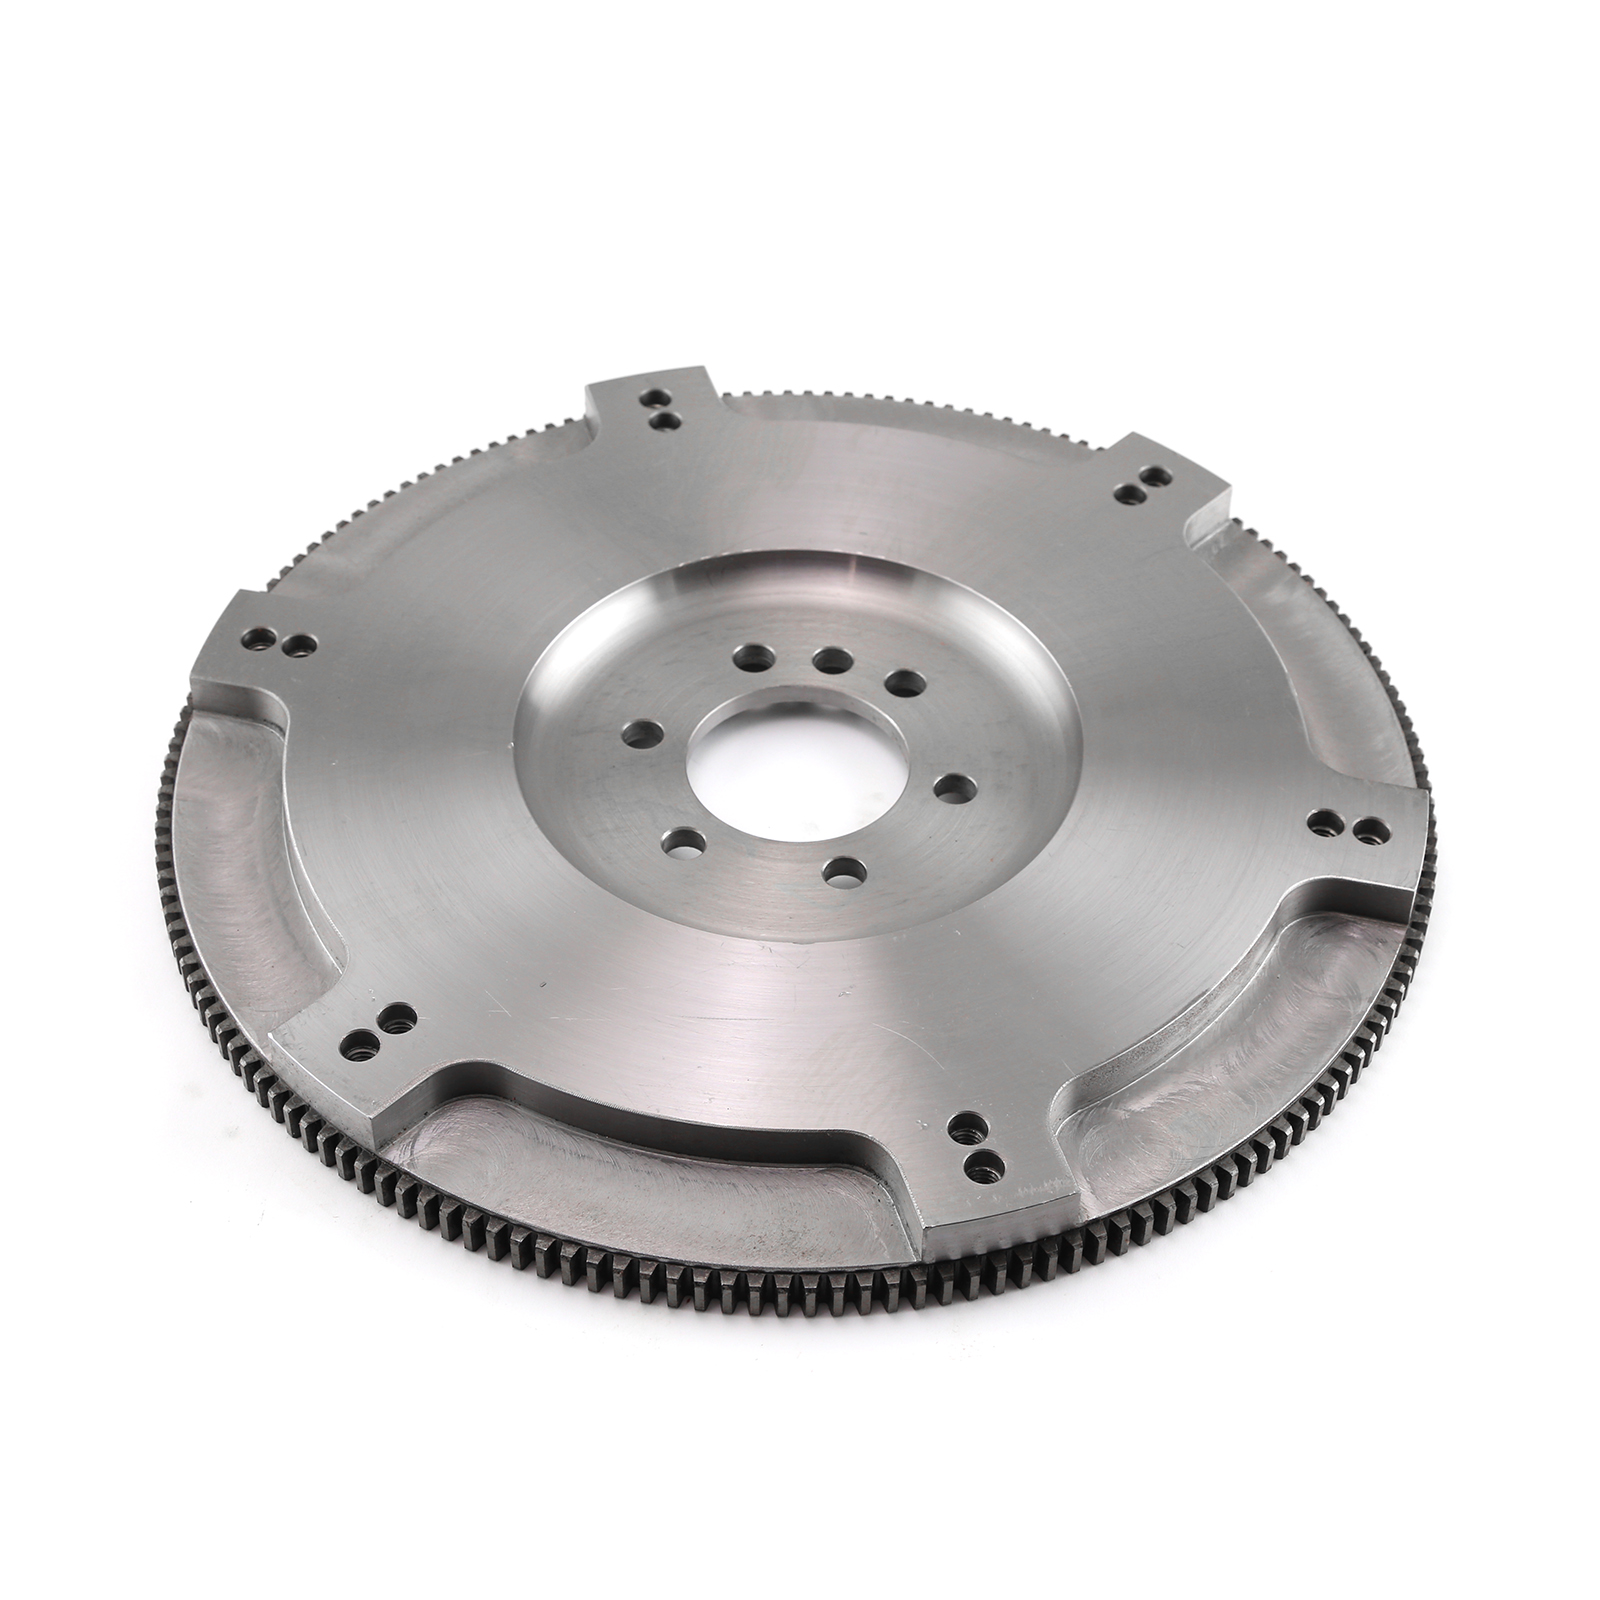 "Chevy SBC 350 2Pc Rms 168 11"" Billet Steel Light SFI Flywheel Int/Ext"